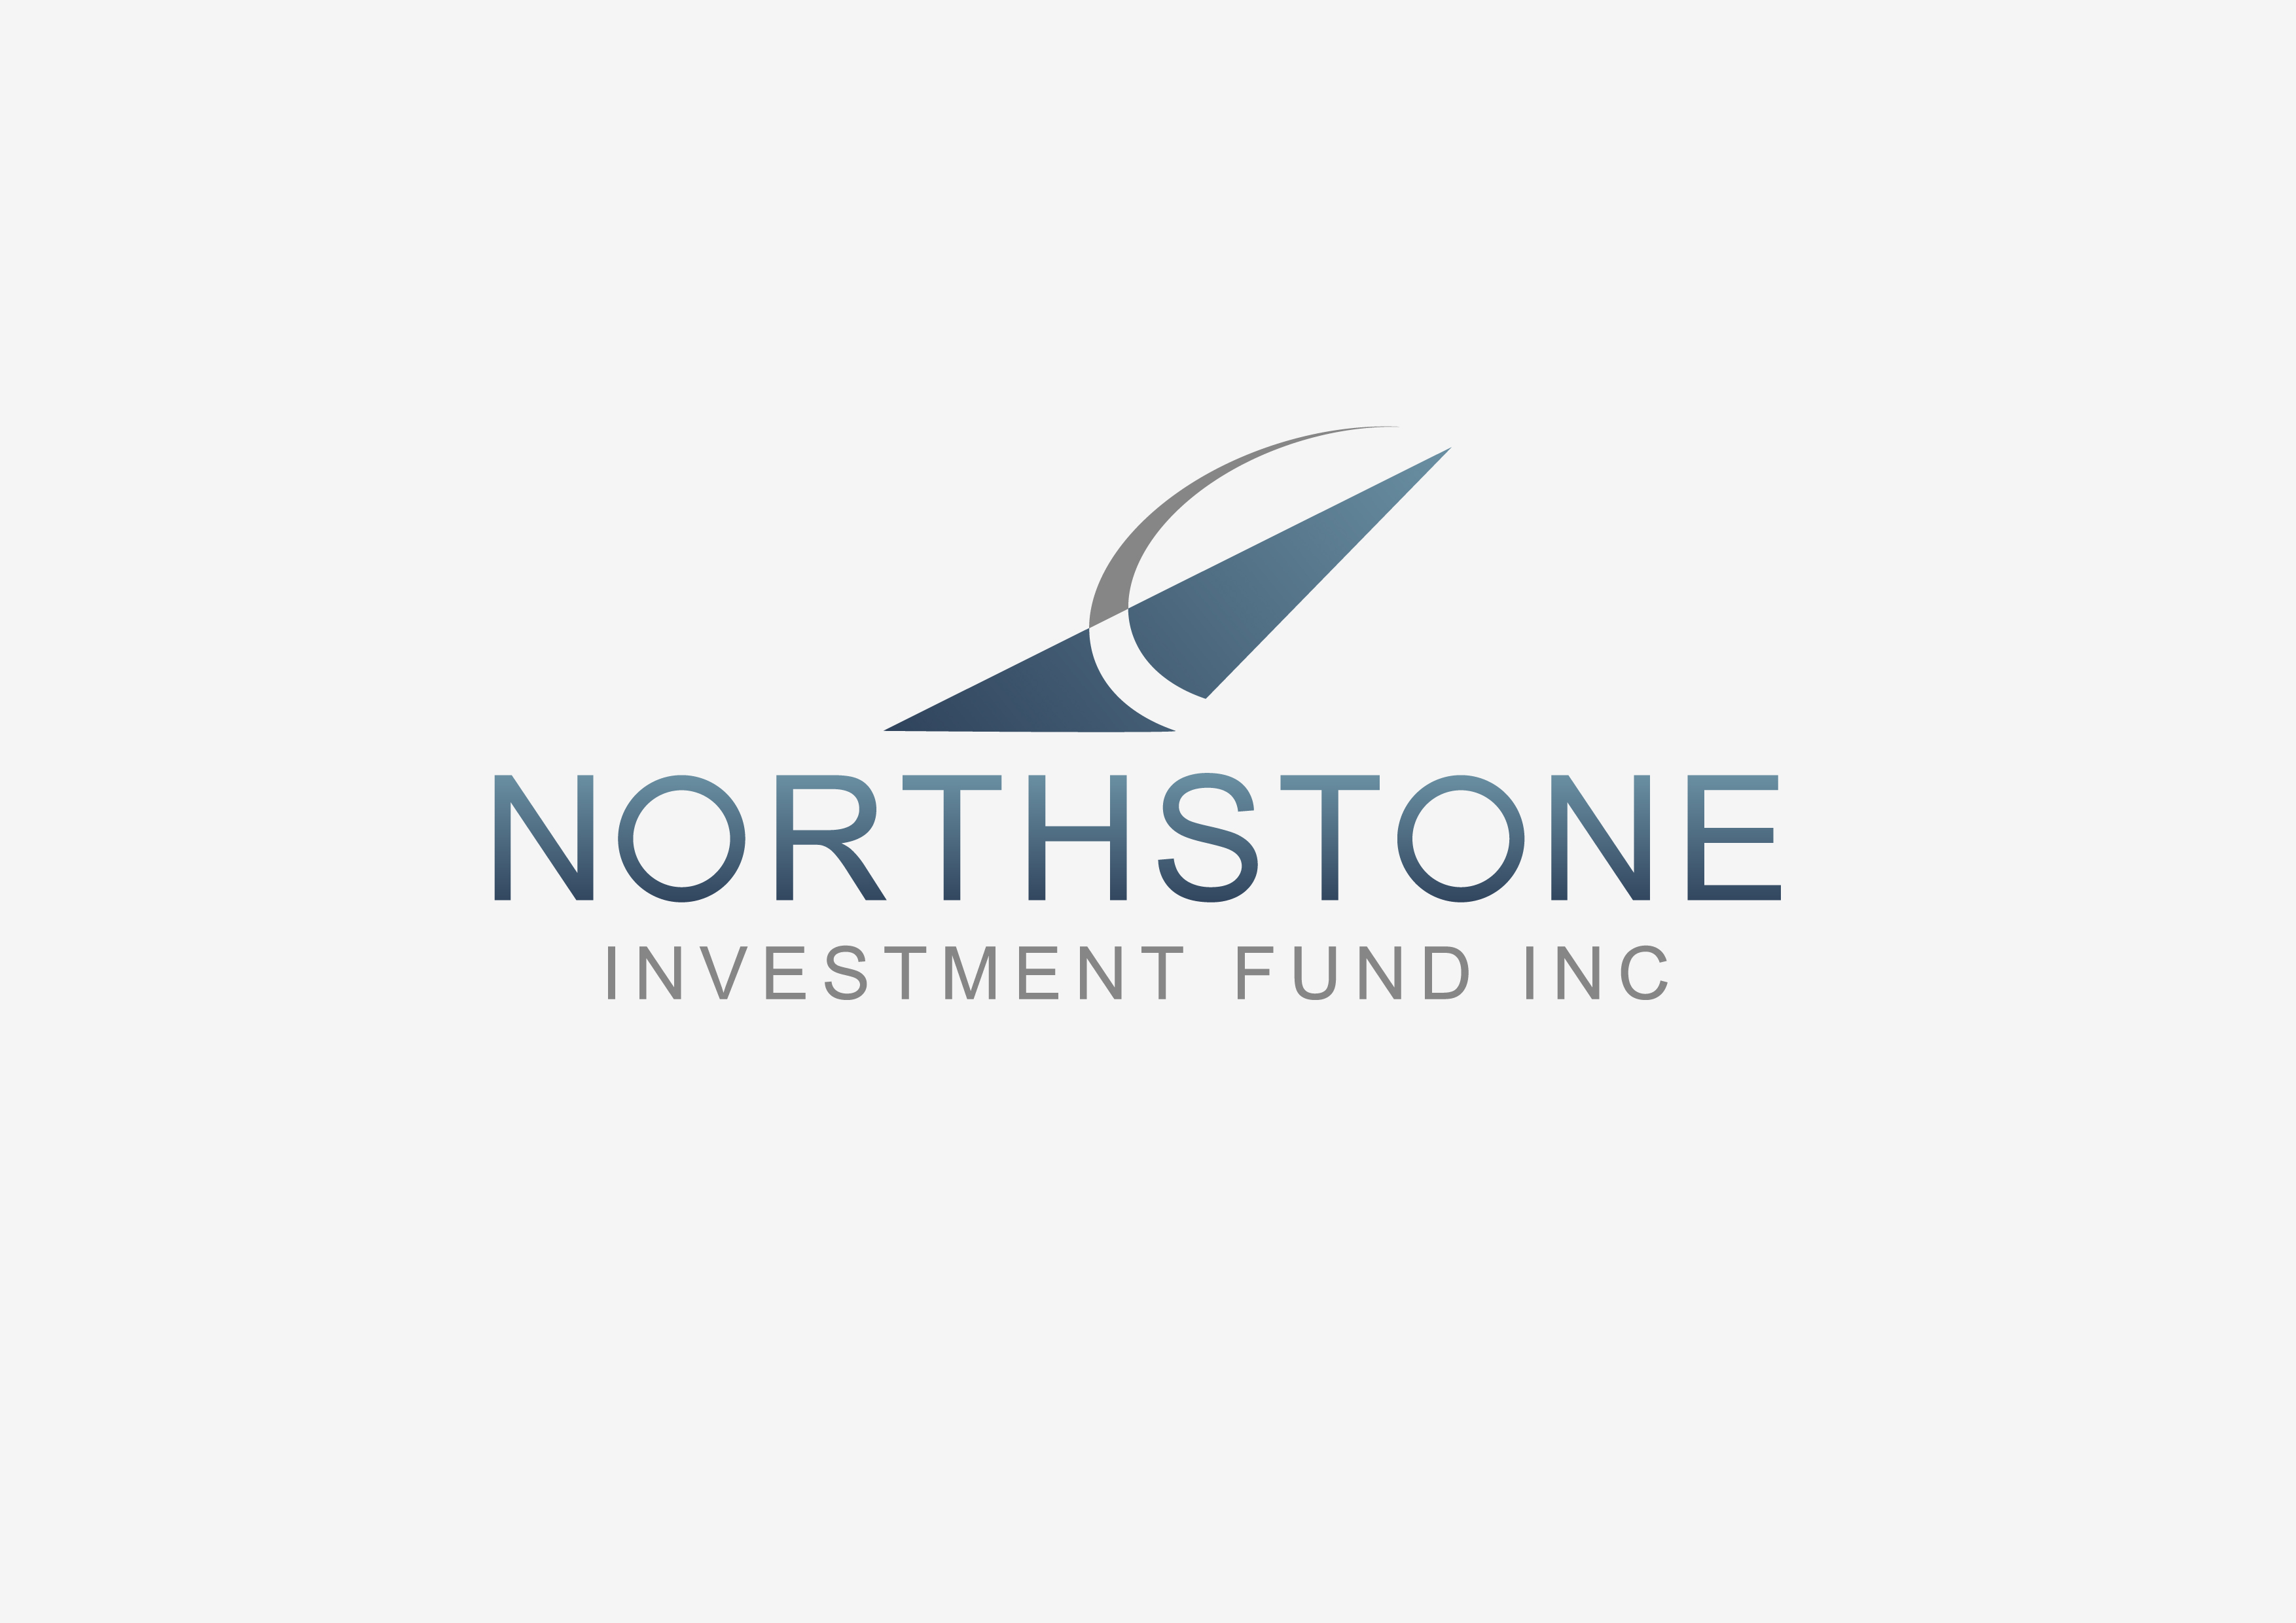 Logo Design by 3draw - Entry No. 235 in the Logo Design Contest Unique Logo Design Wanted for NorthStone Investment Fund Inc.